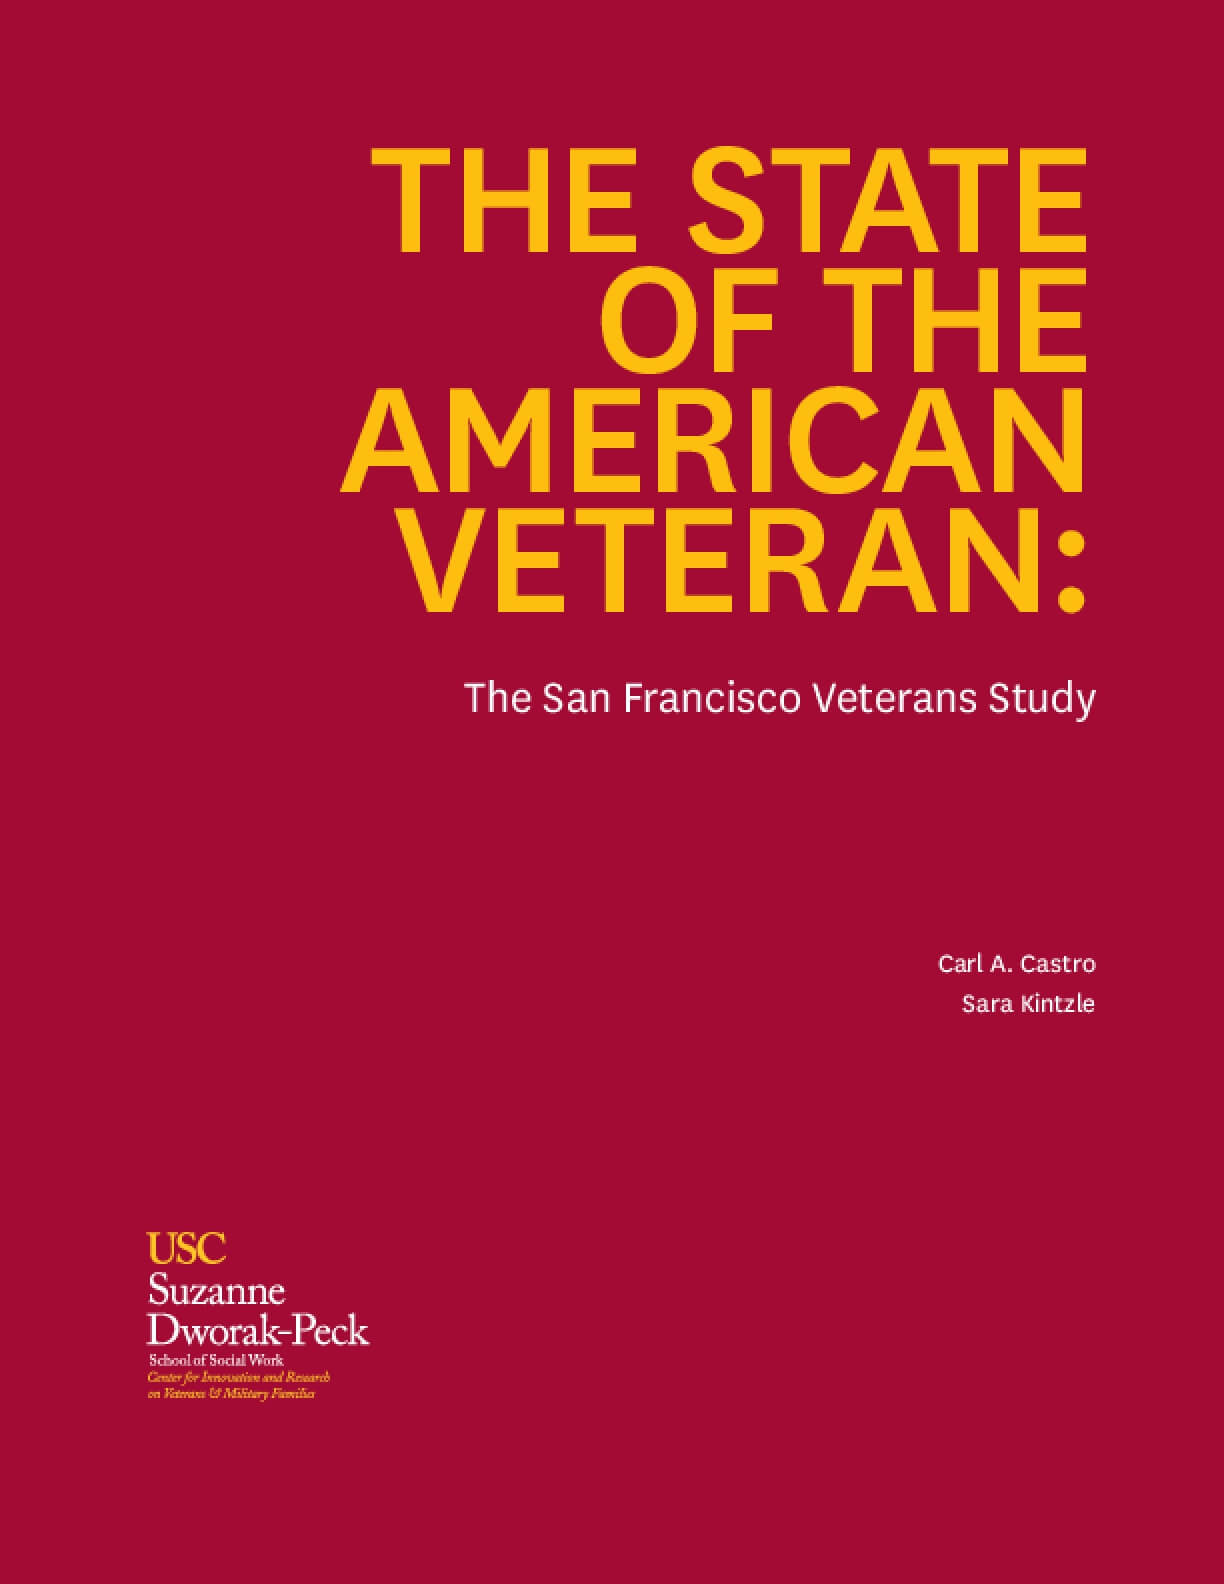 The State of the American Veteran: The San Francisco Veterans Study